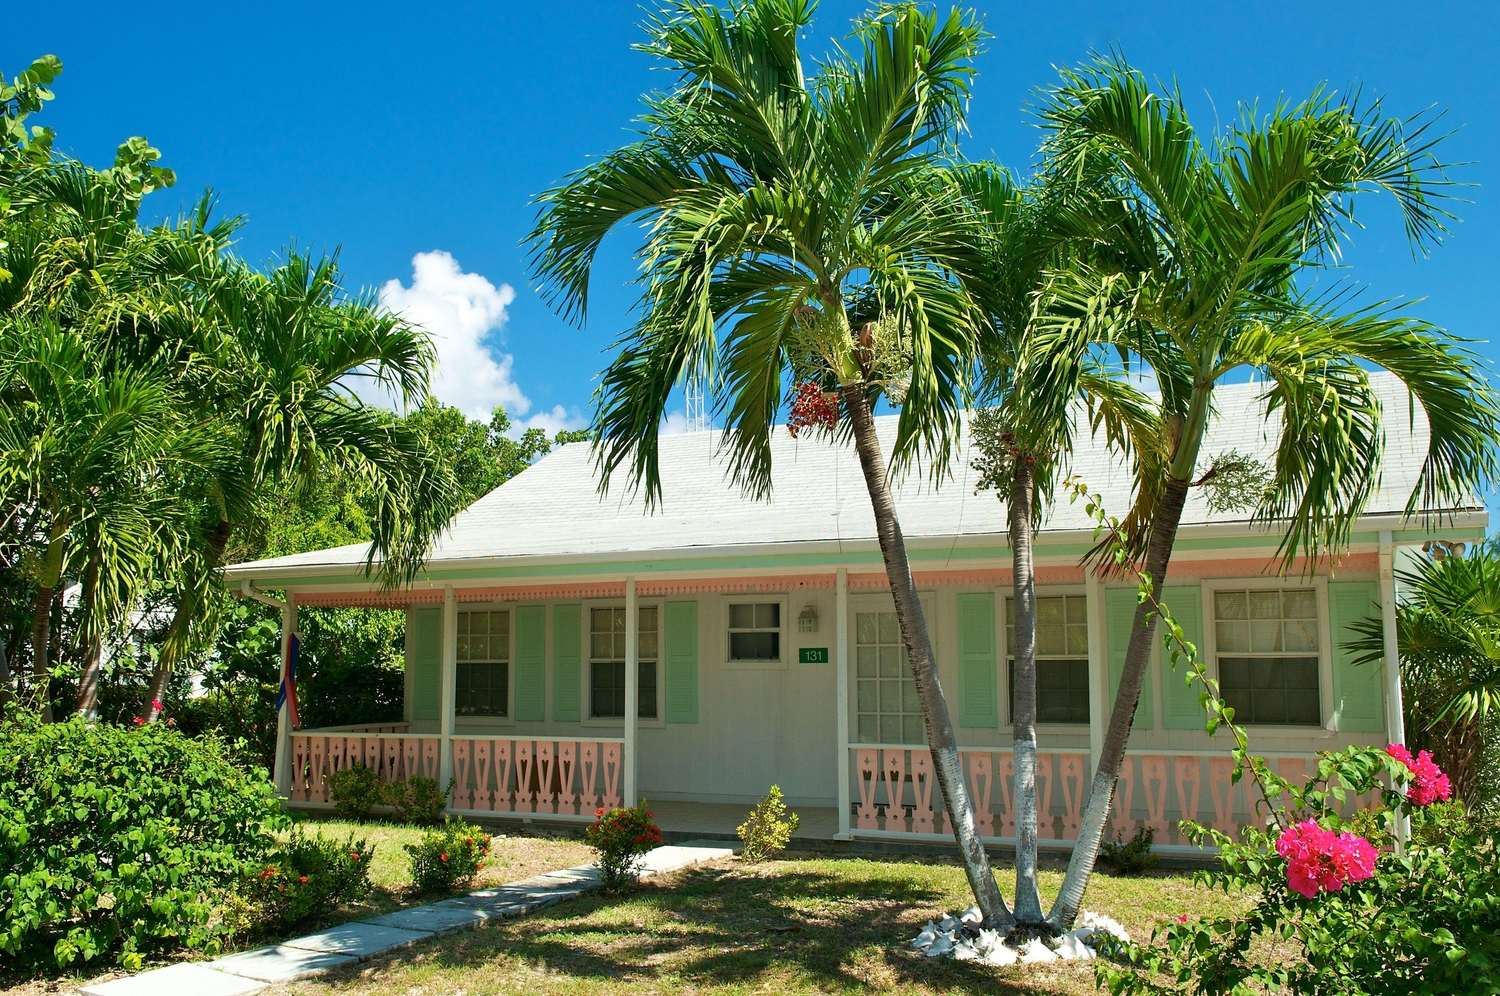 Old cayman style home in light green